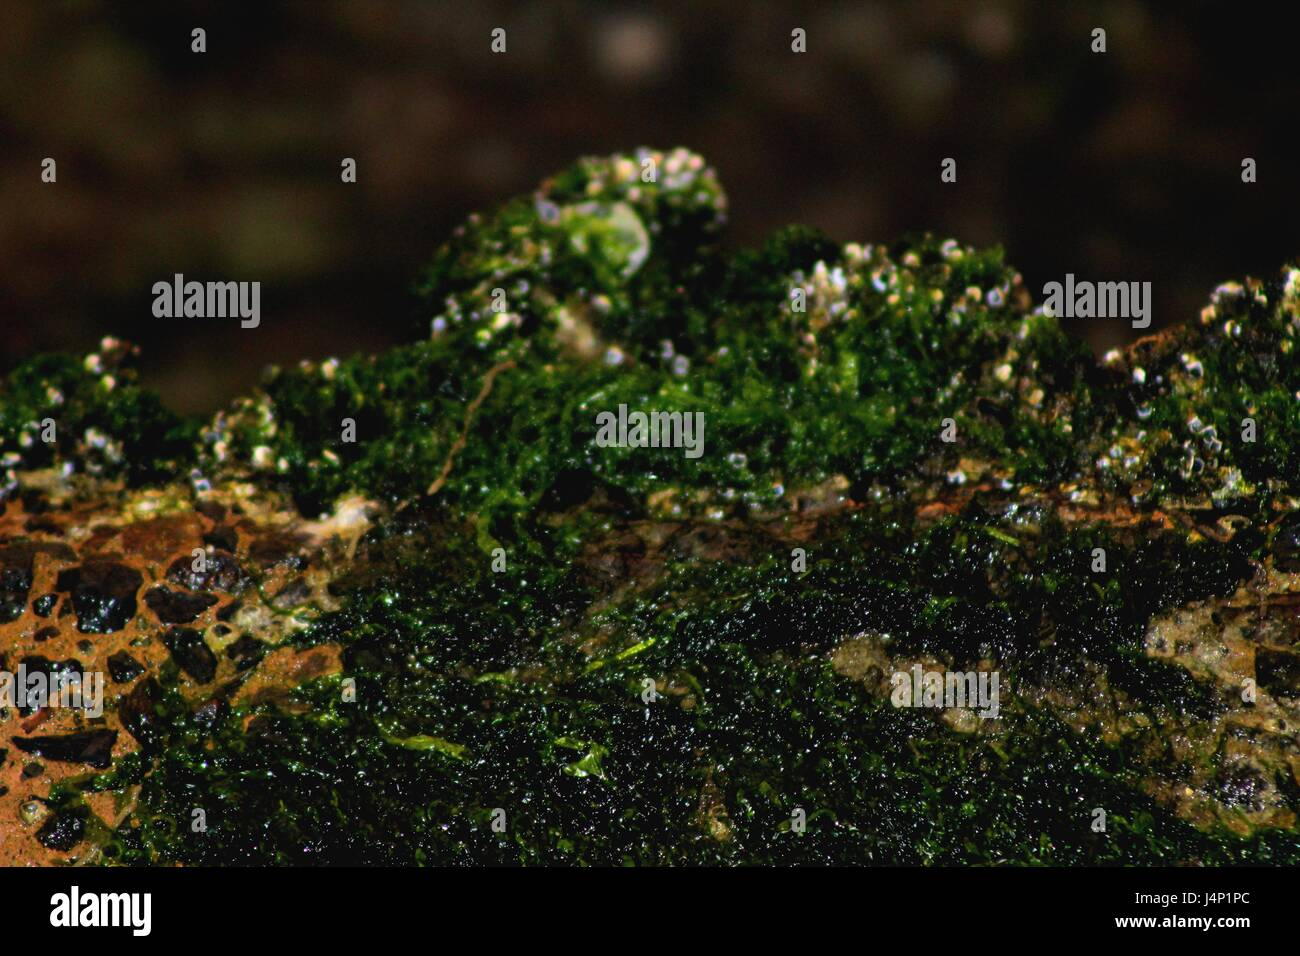 green moss found in Sharjah lagoon - Stock Image